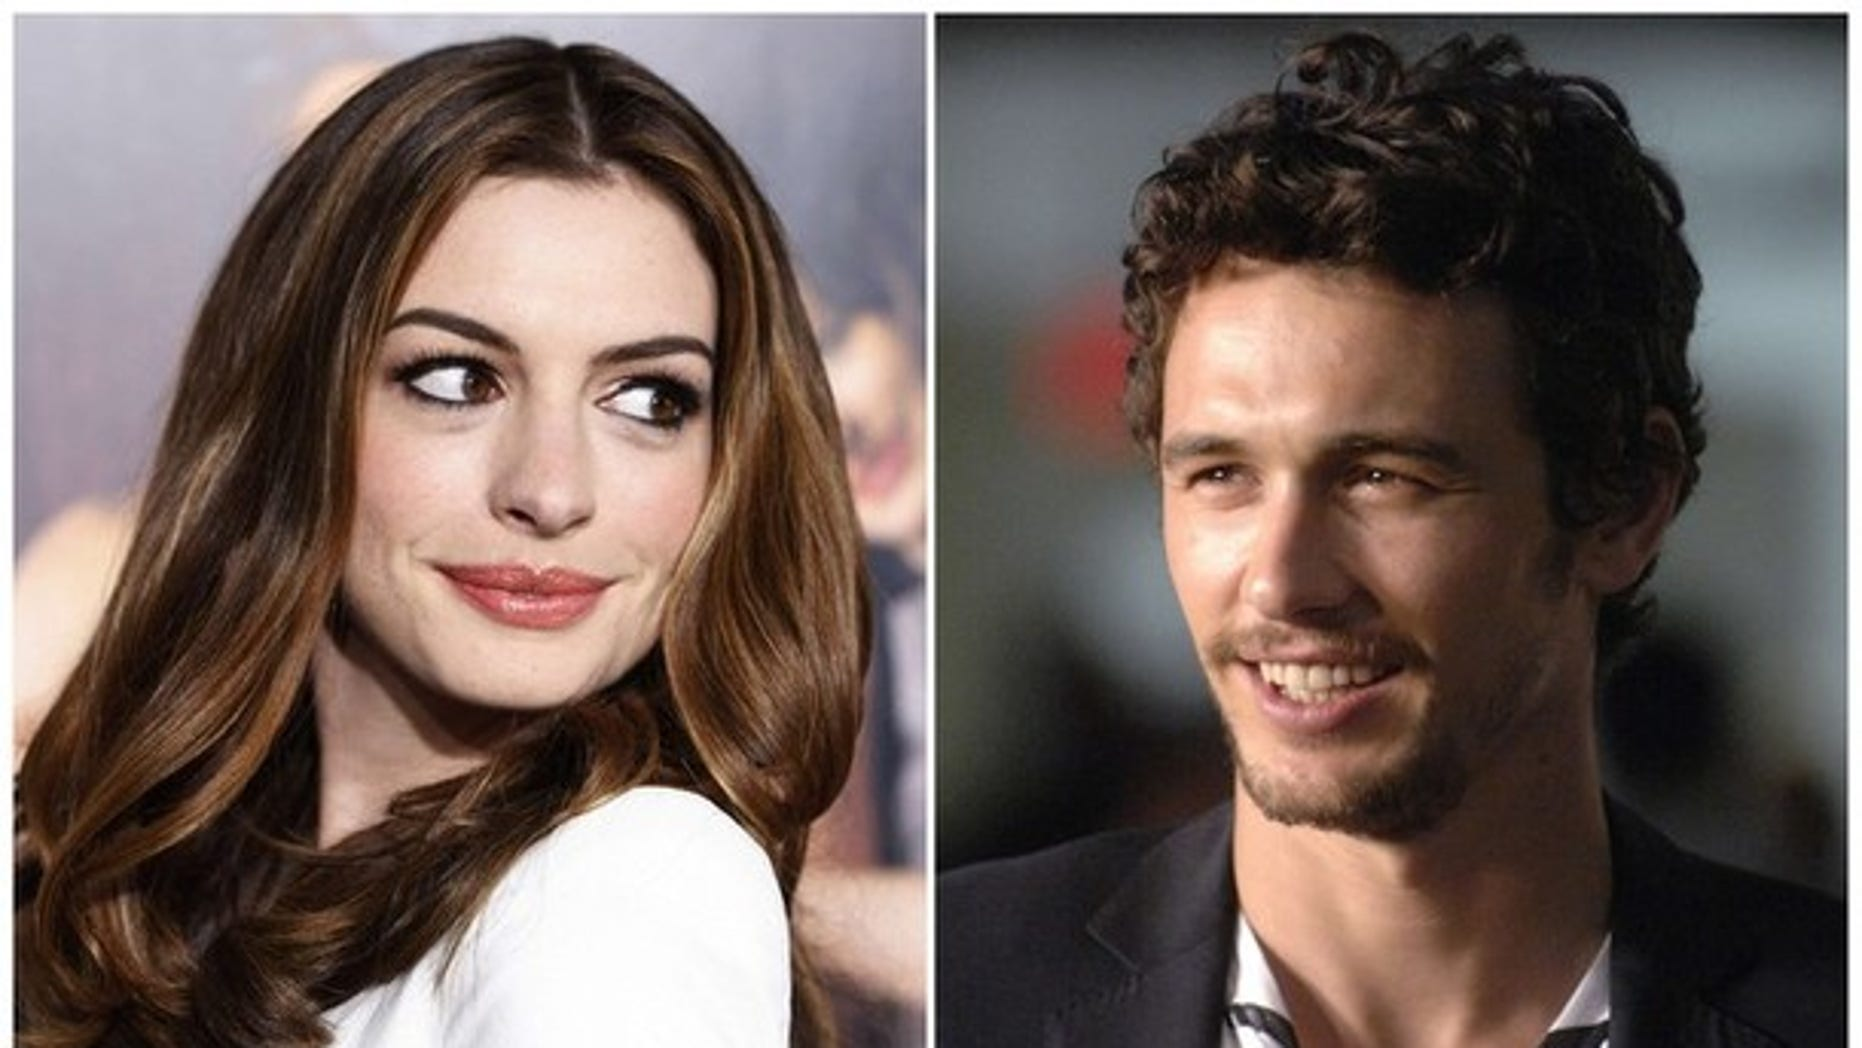 Anne Hathaway and James Franco will host the upcoming Oscars.